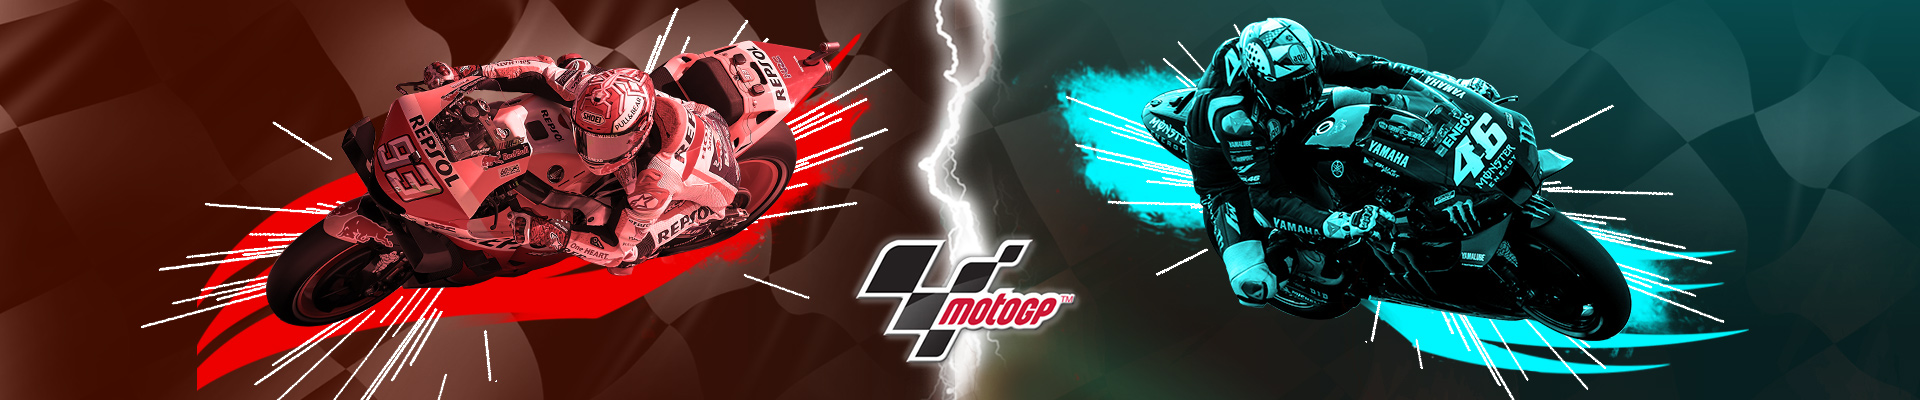 Watch every MotoGP, Moto2 and Moto3 race exclusively live on BT Sport